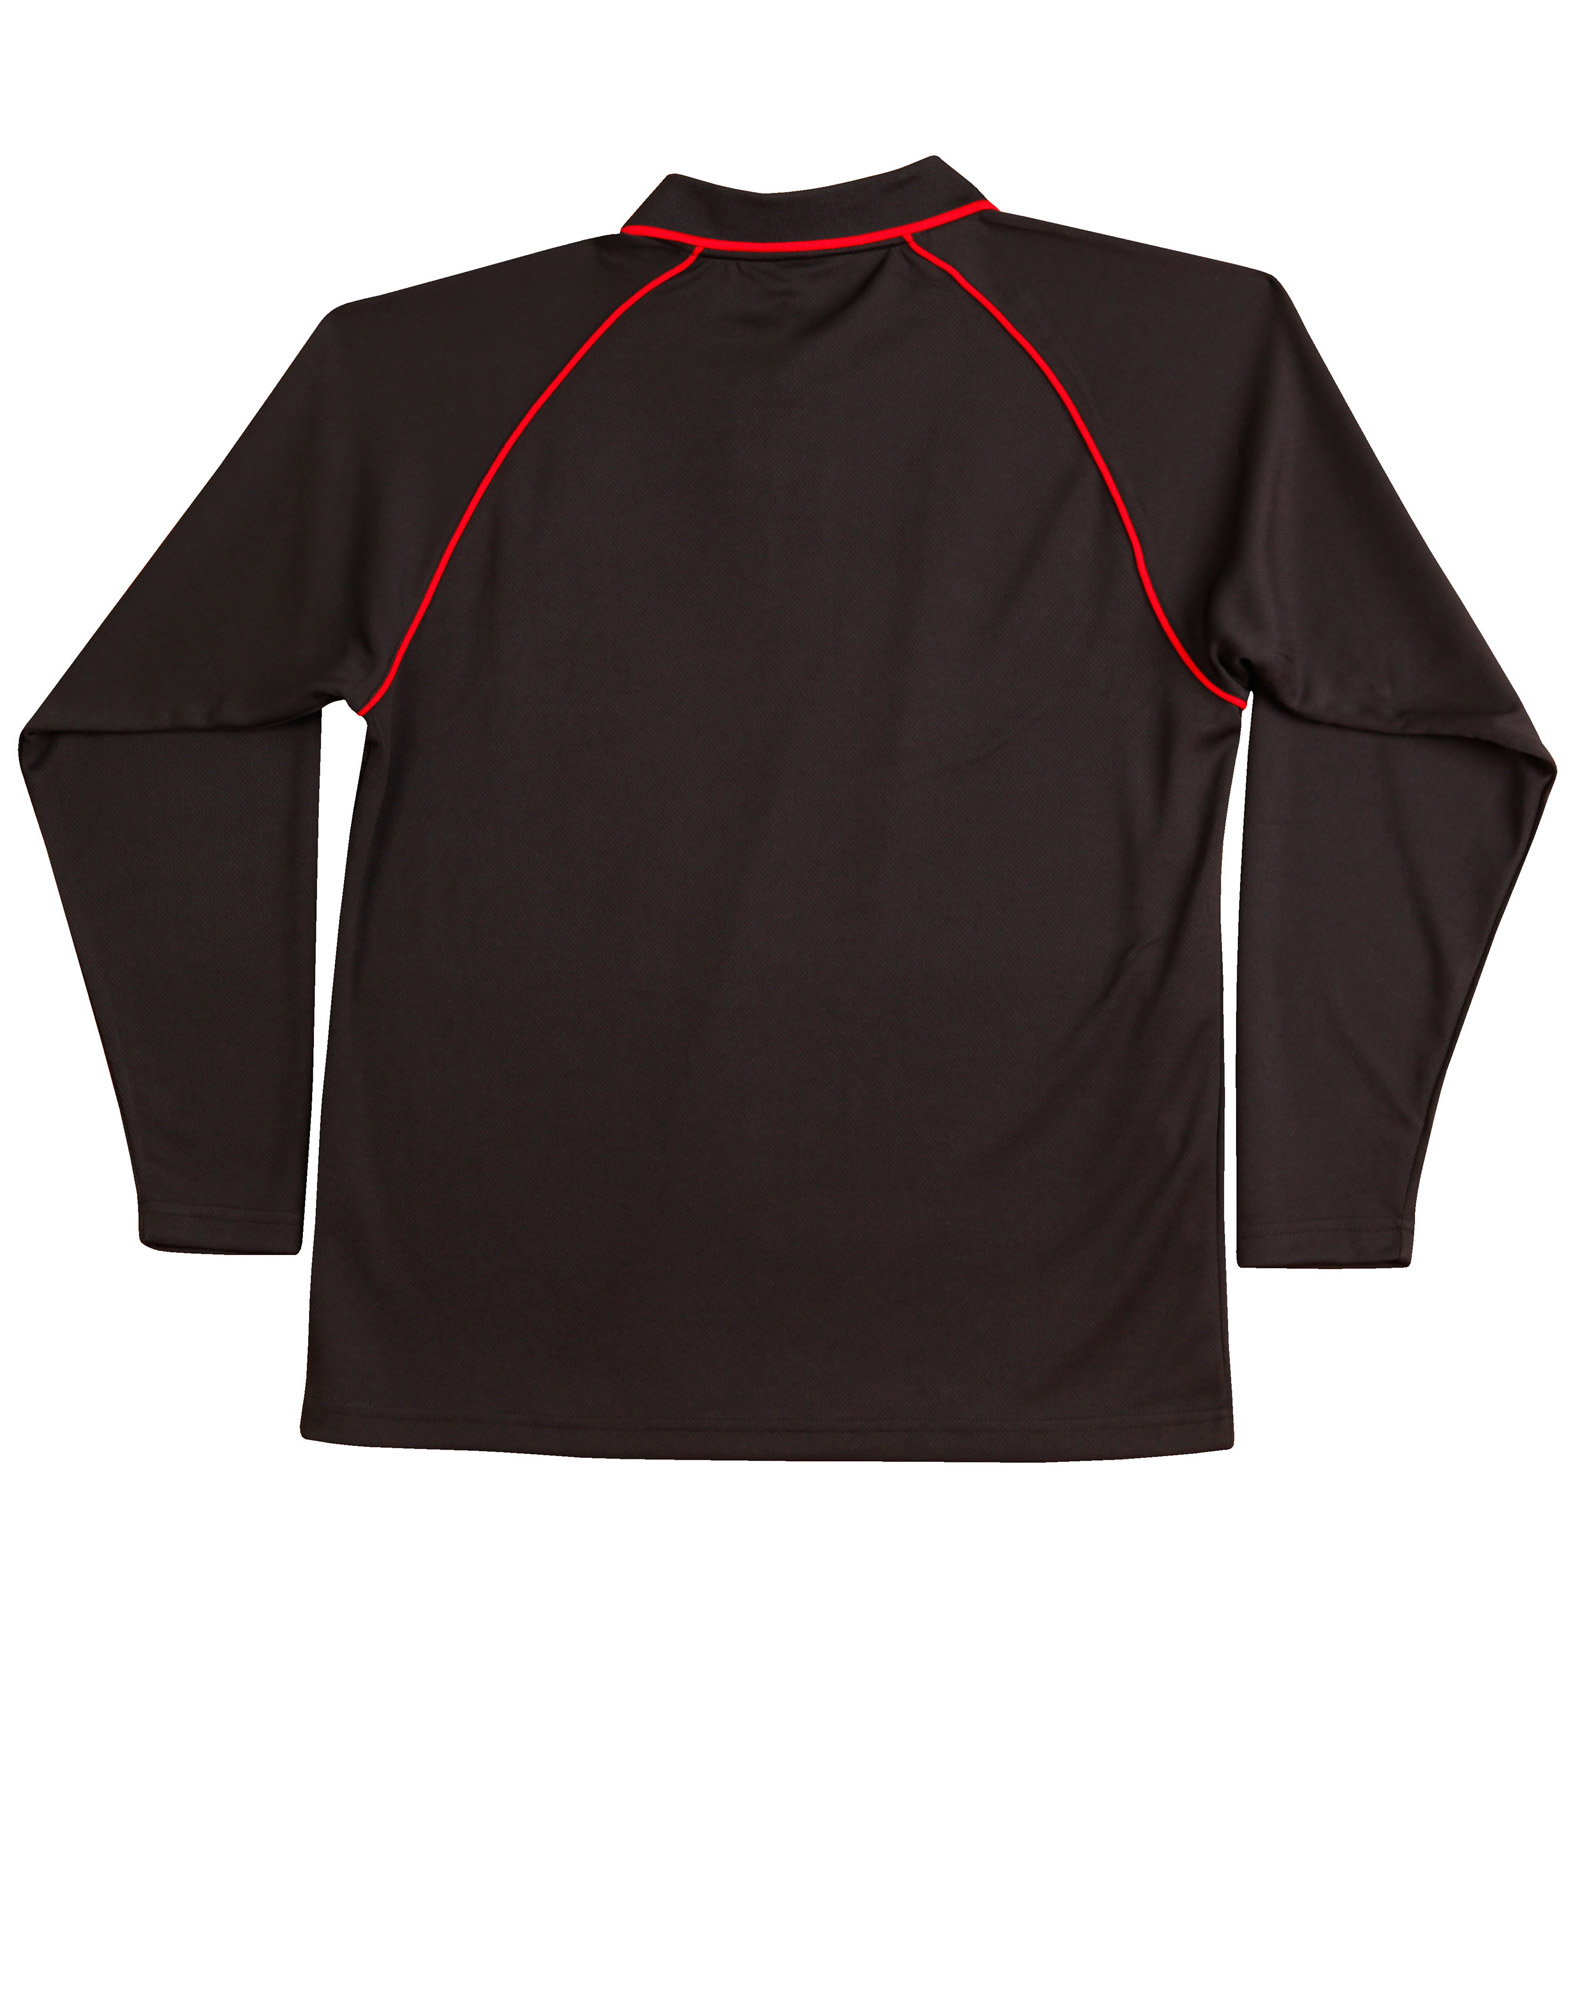 https://s3-ap-southeast-1.amazonaws.com/ws-imgs/POLOSHIRTS/PS43_BlackRed_Back_l.jpg